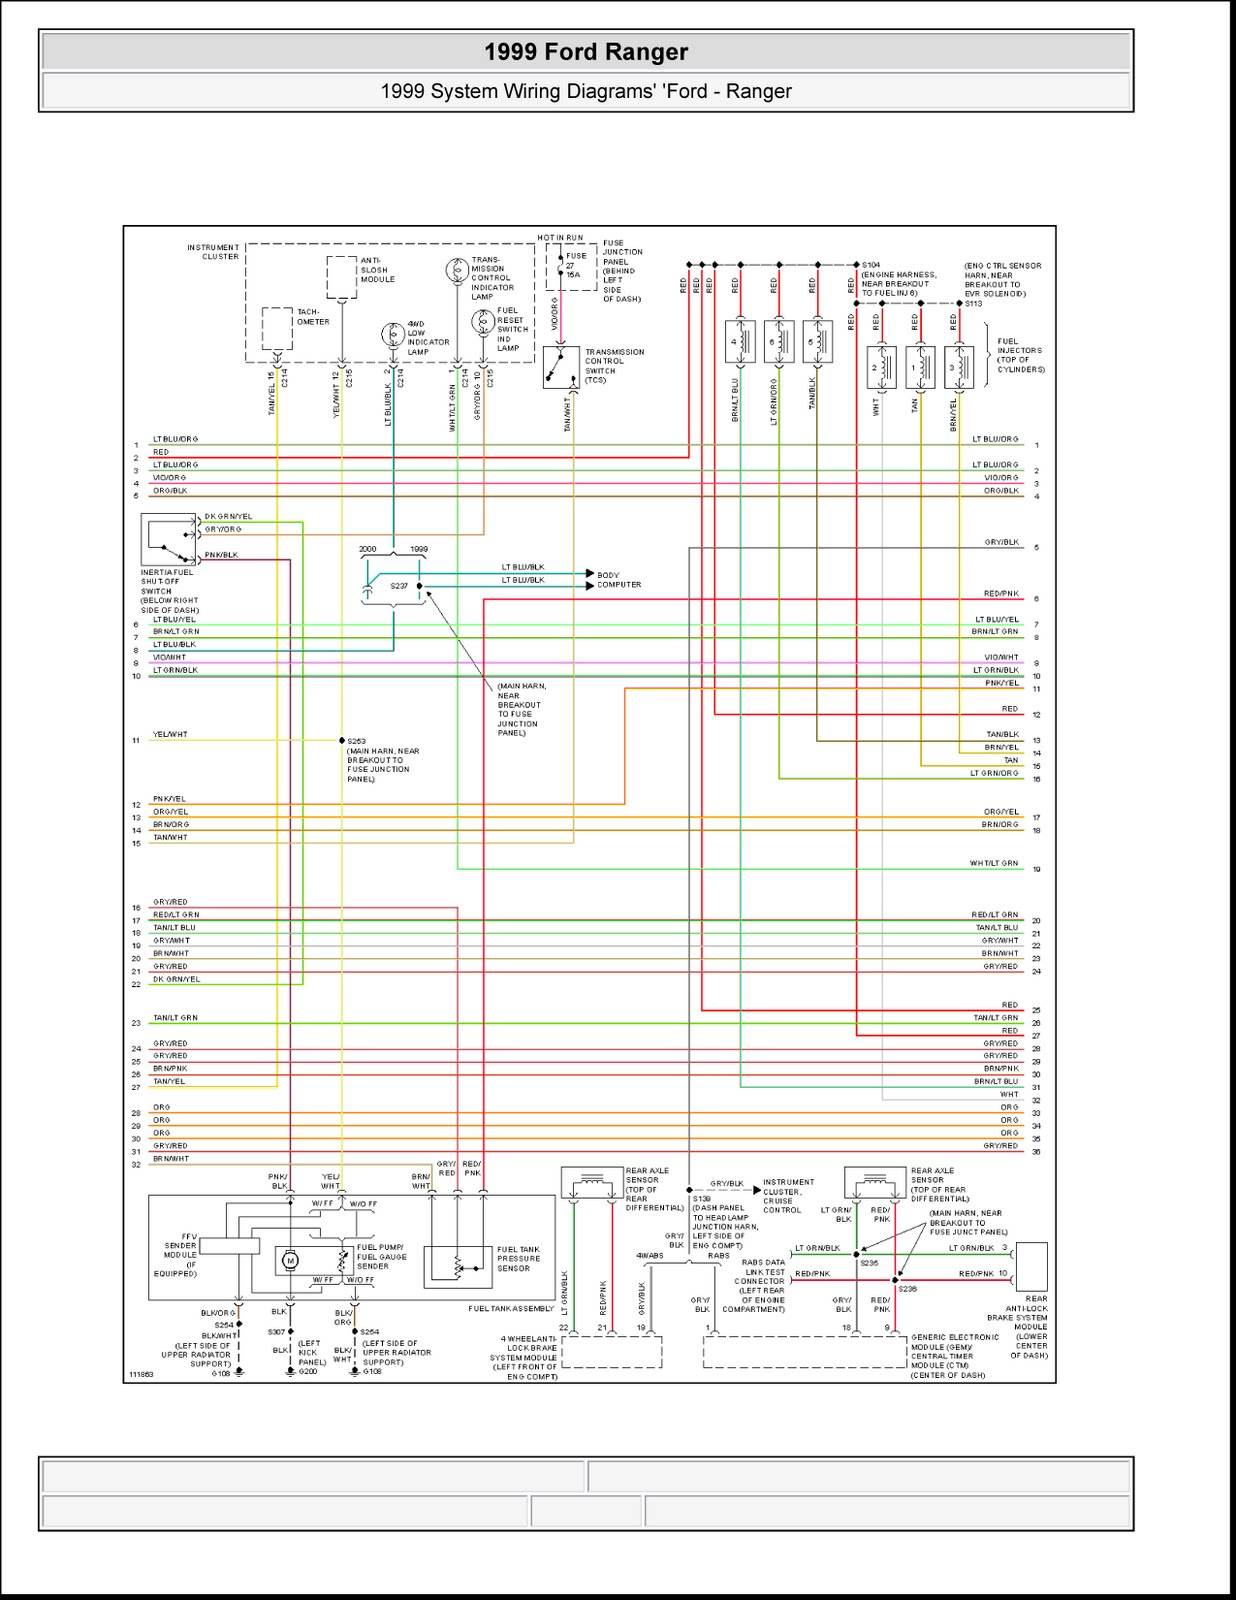 0003 1999 ford ranger system wiring diagrams 4 images wiring 1999 ford ranger ignition wiring diagram at edmiracle.co